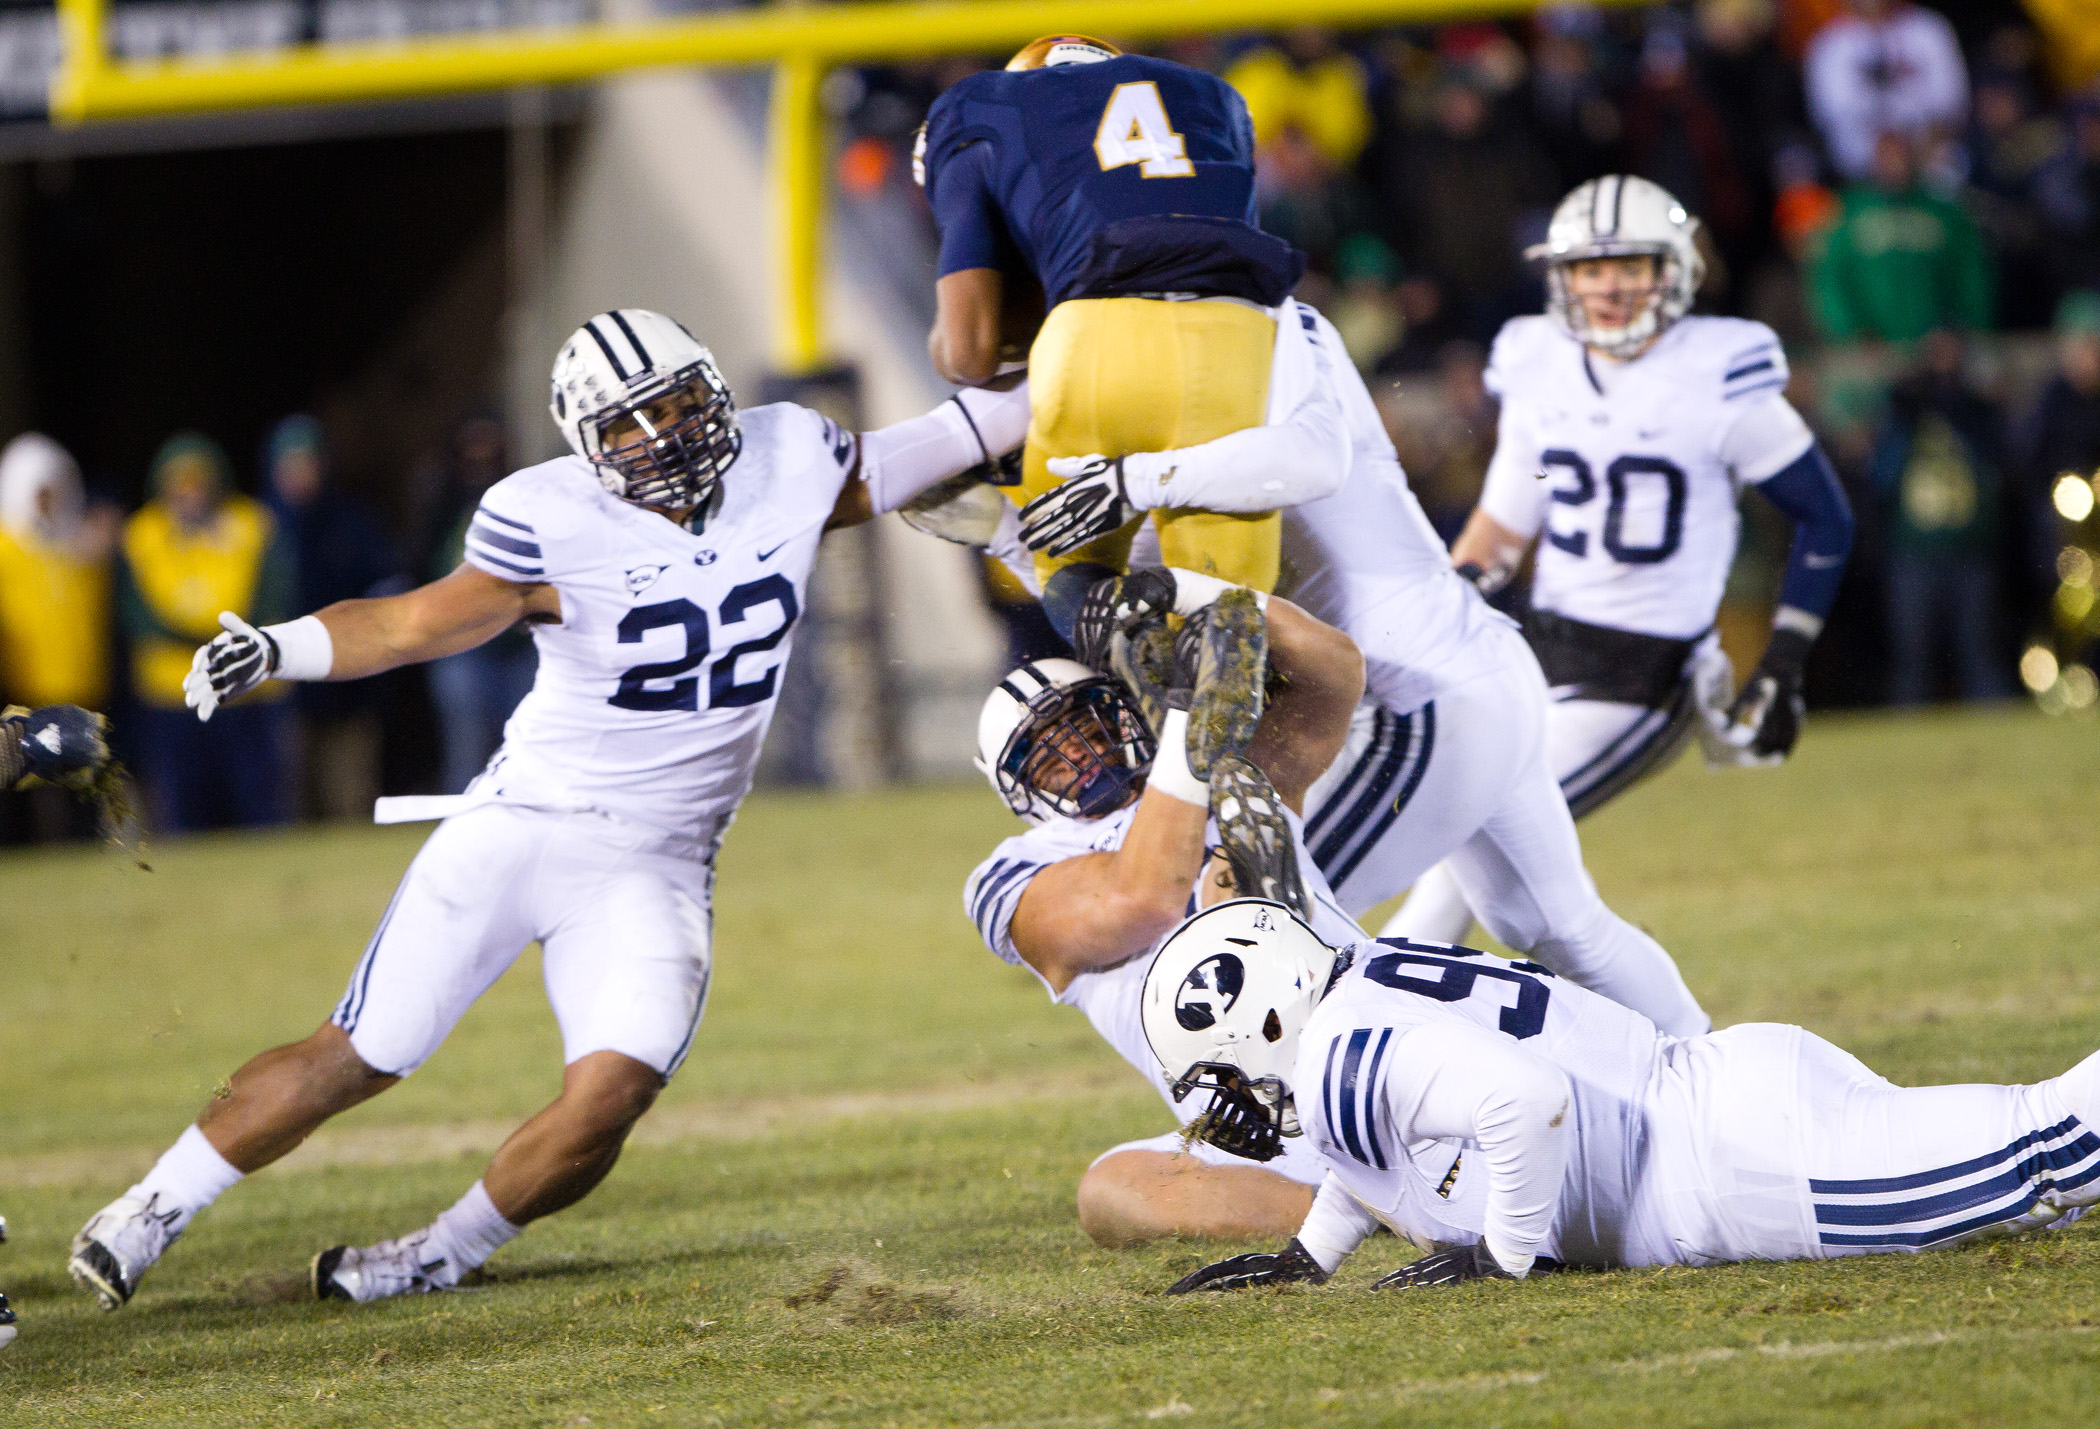 Manoa Pikula and two other BYU defenders take down a Notre Dame running back during Saturday's game in South Bend. (Sarah Hill)